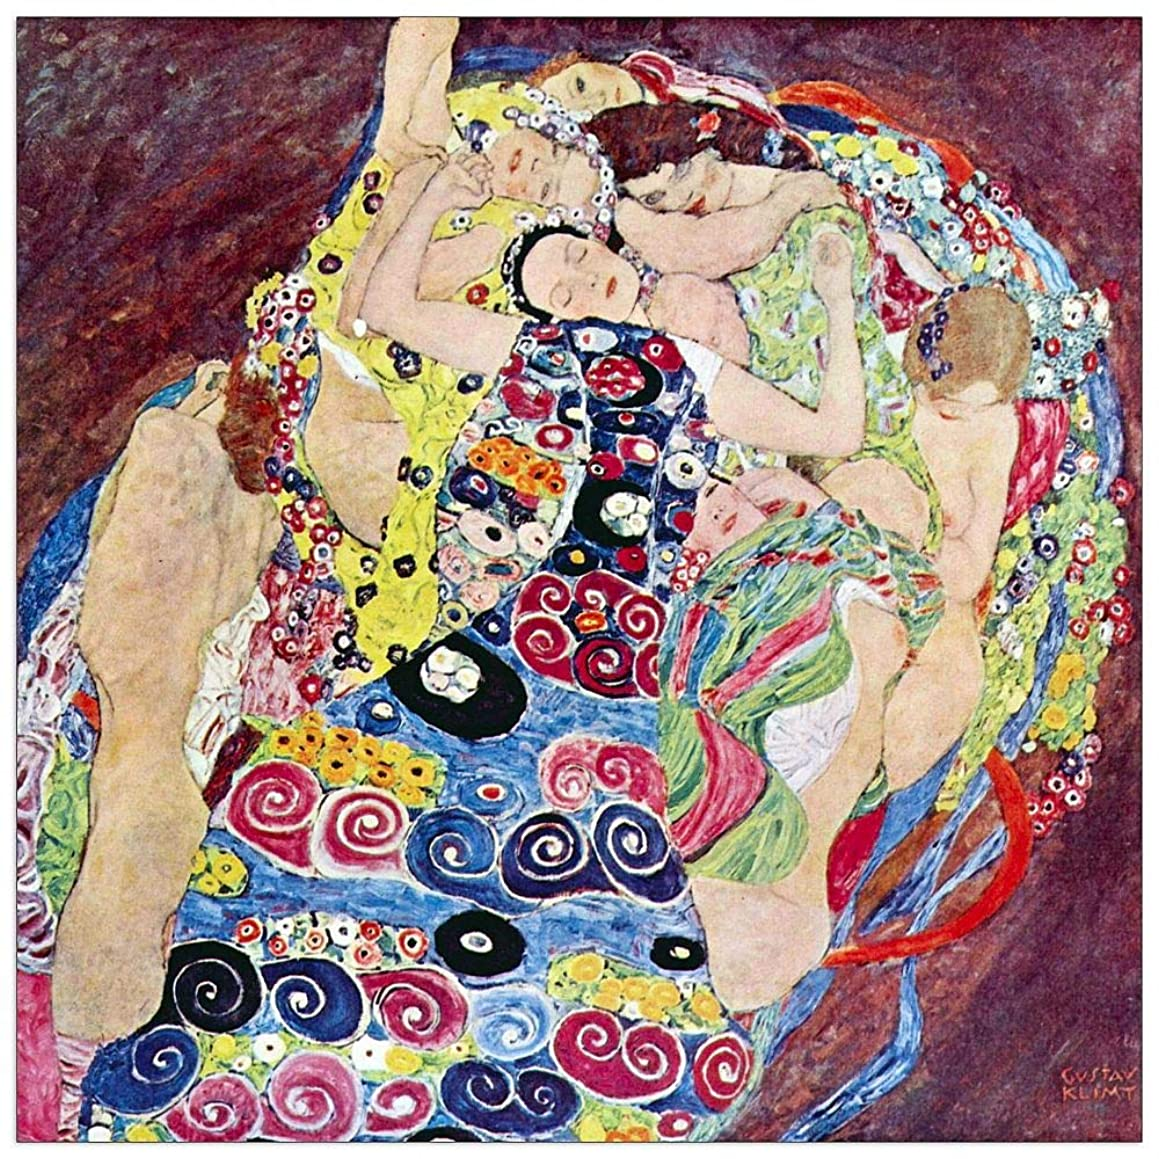 ArtPlaza TW90509 Klimt Gustav - Virgins Decorative Panel 23.5x23.5 Inch Multicolored